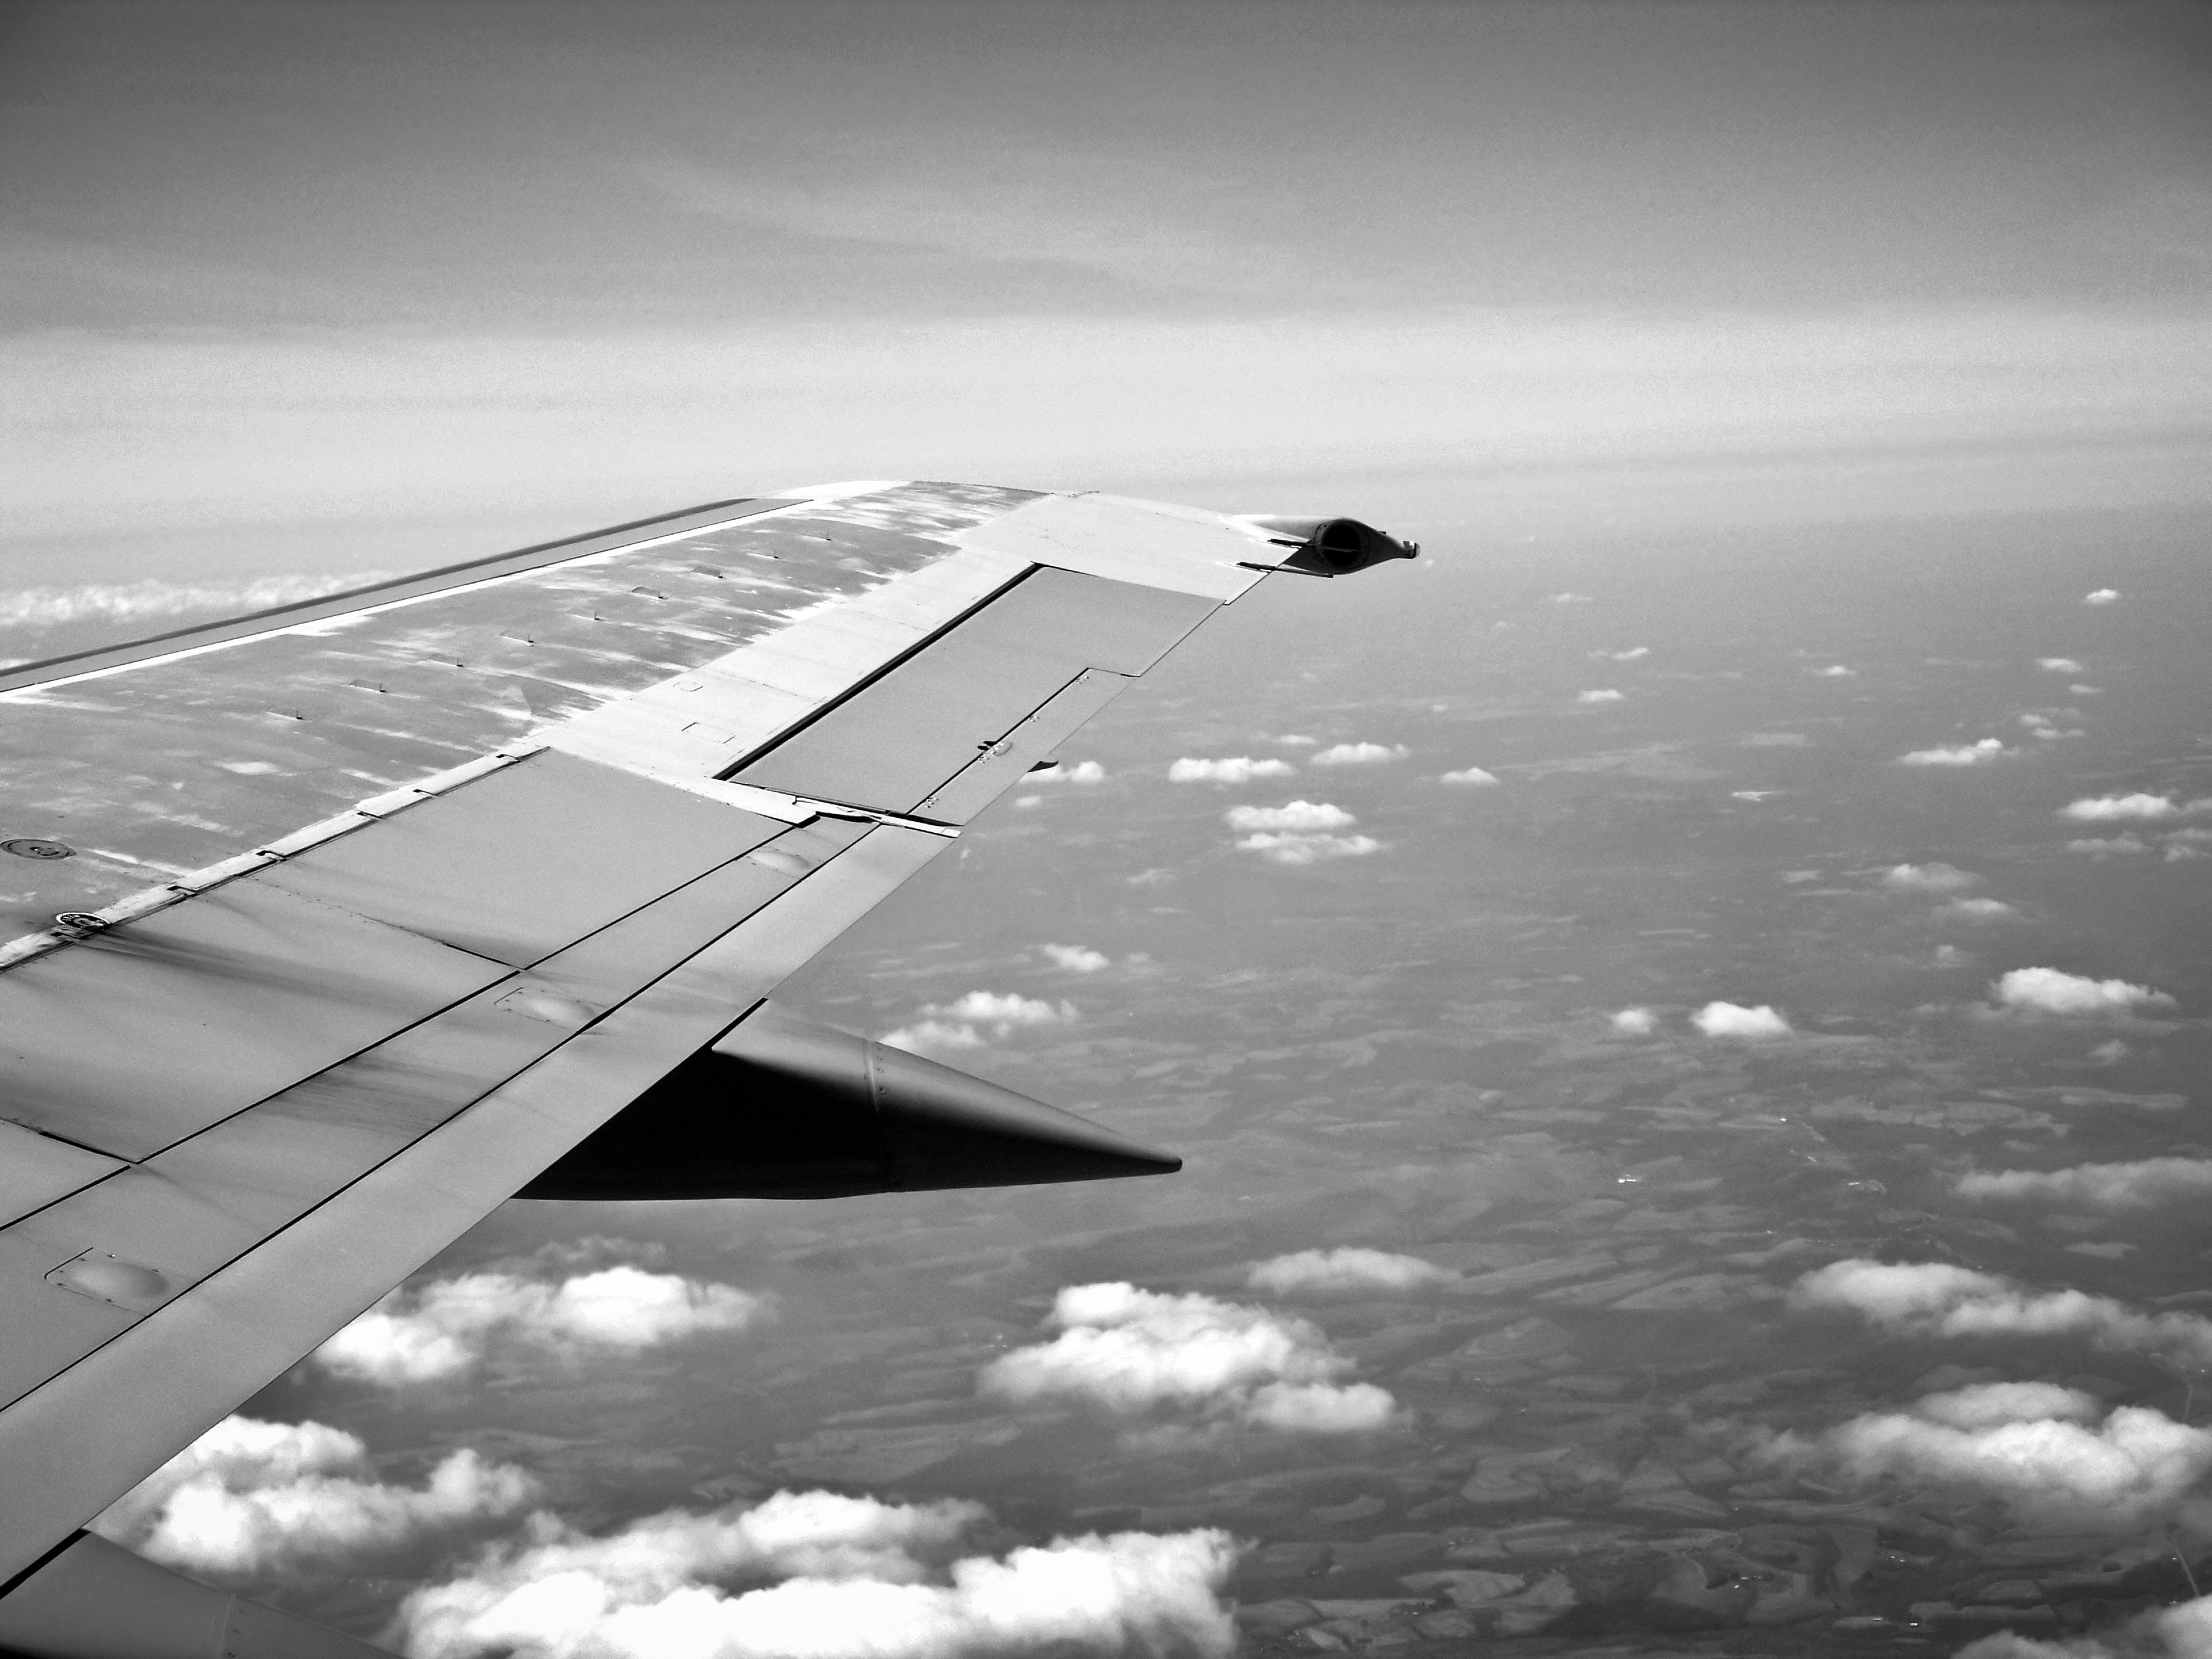 Aerial Photography of Plane Wing and Sky